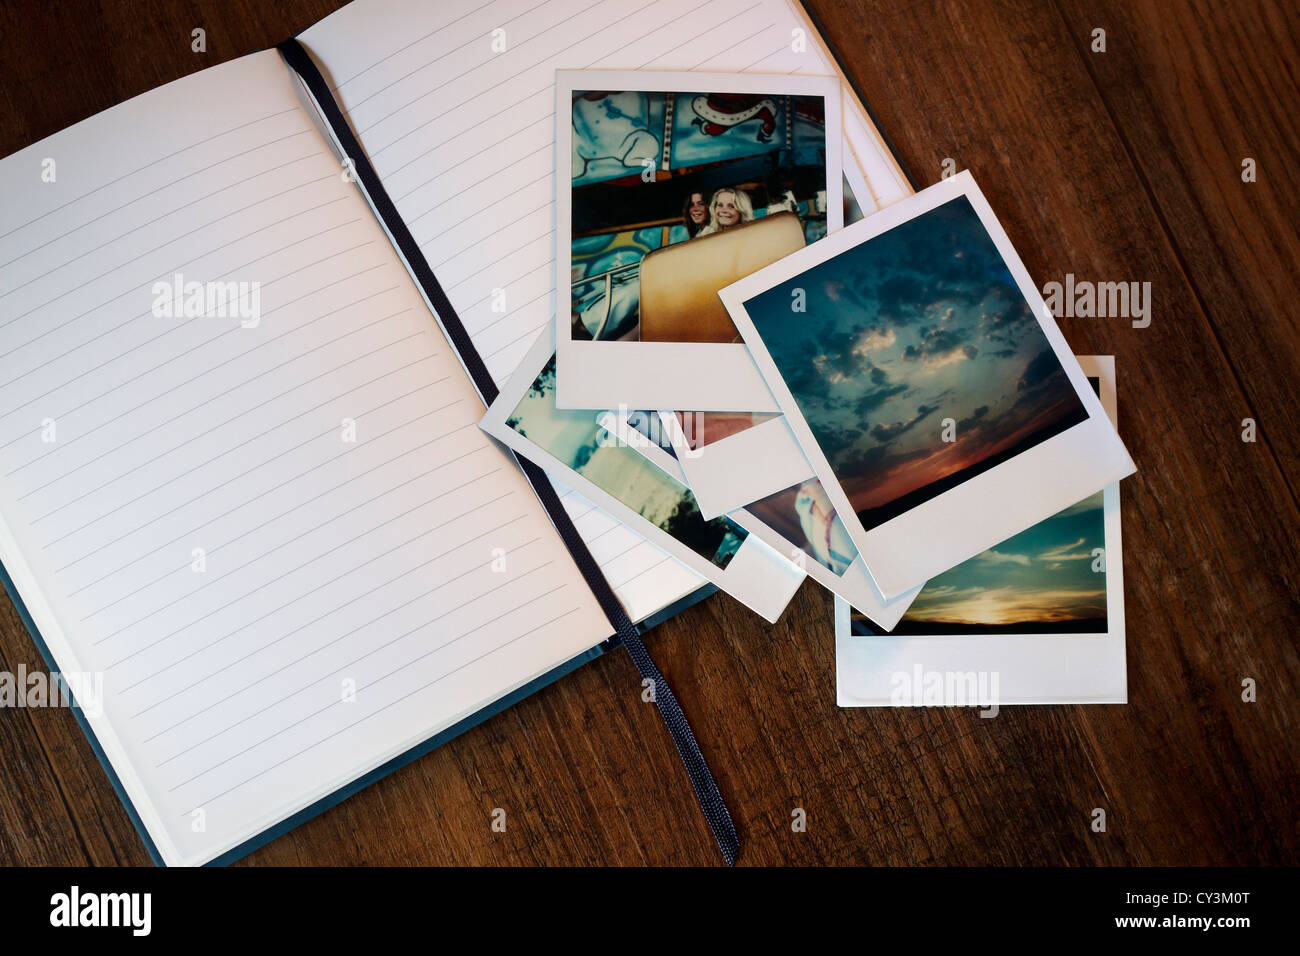 Polaroid pictures lying on top of a journal. - Stock Image